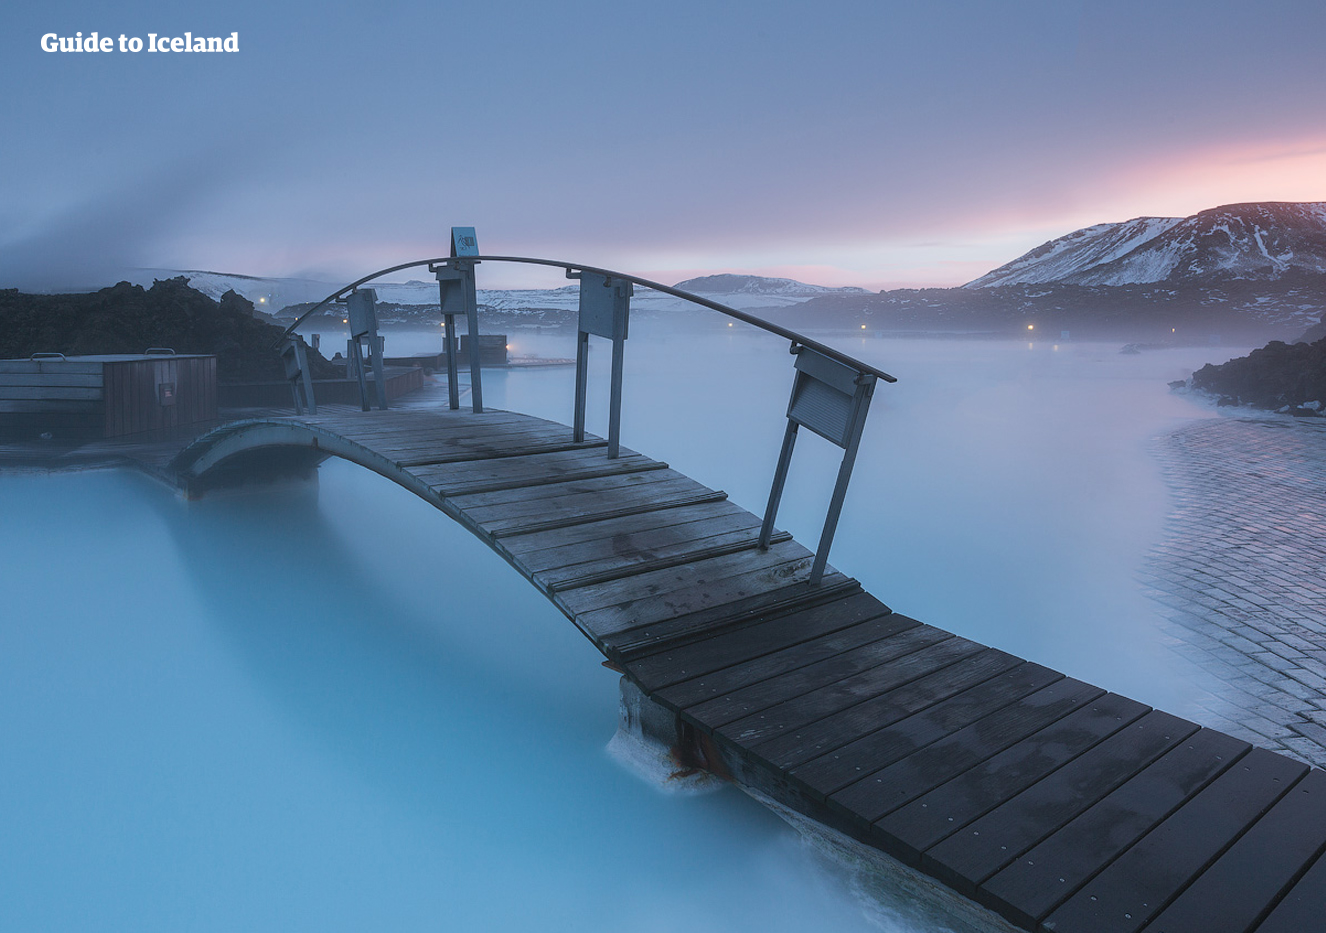 Explore the great Reykjanes Peninsula where you'll find the Blue Lagoon on a winter self-drive tour.